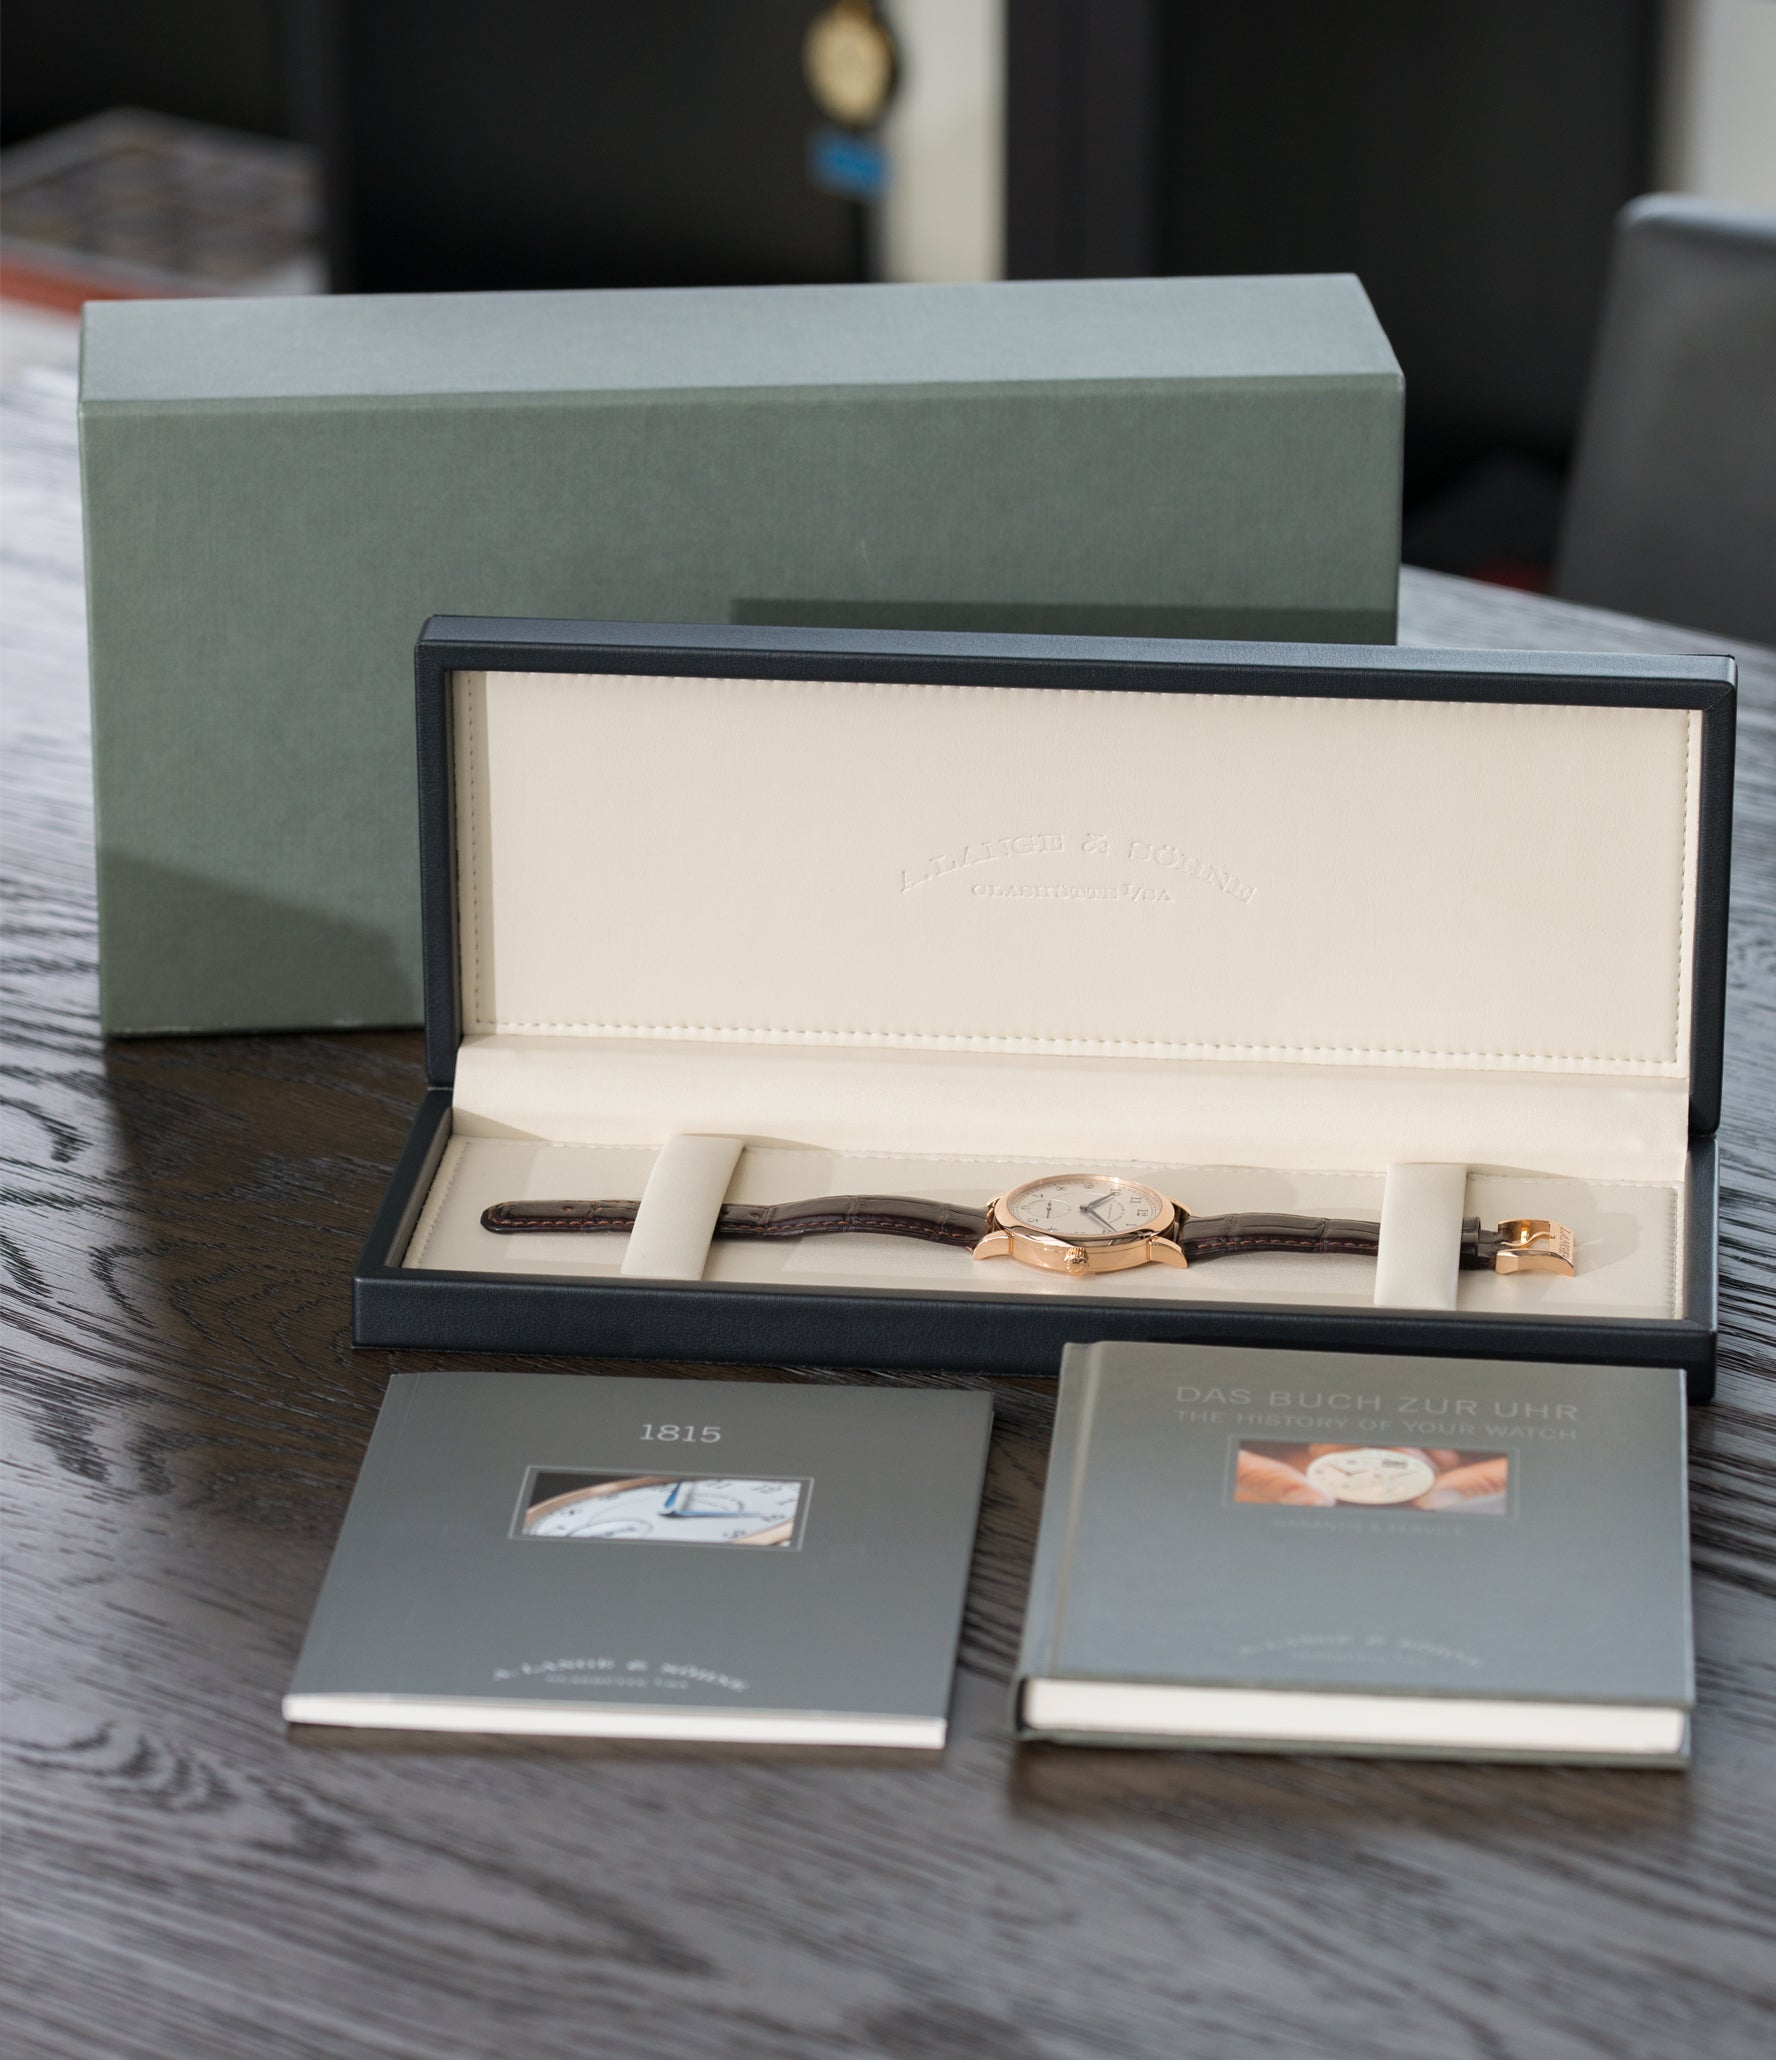 full set A. Lange & Sohne 1815 233.032 rose gold pre-owned dress watch for sale online at A Collected Man London Uk specialist of preowned luxury watches